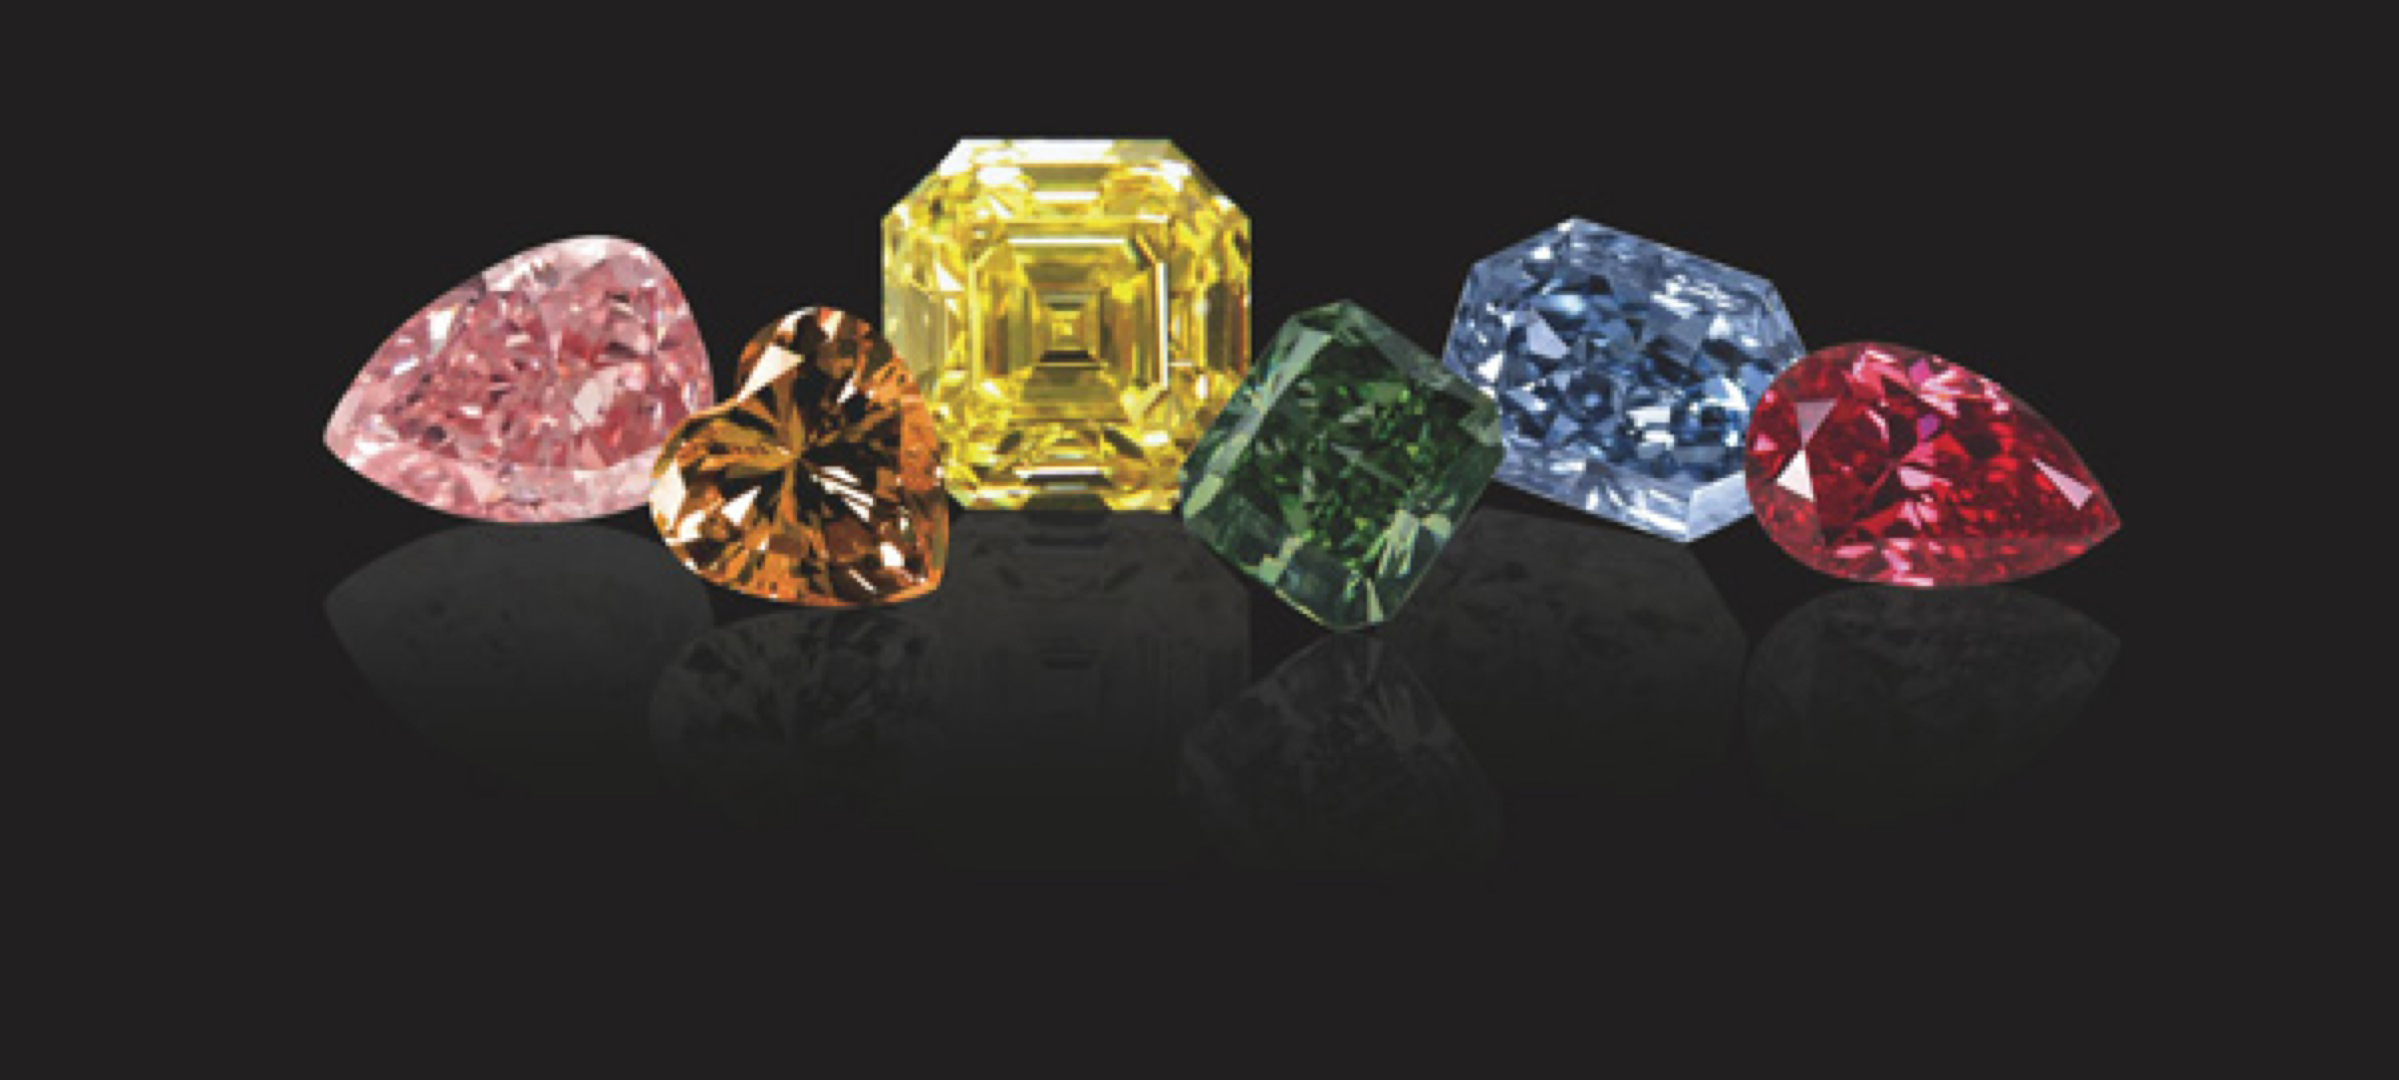 museum exhibit pink rare diamond gia hosts research juliet colored la news fancy